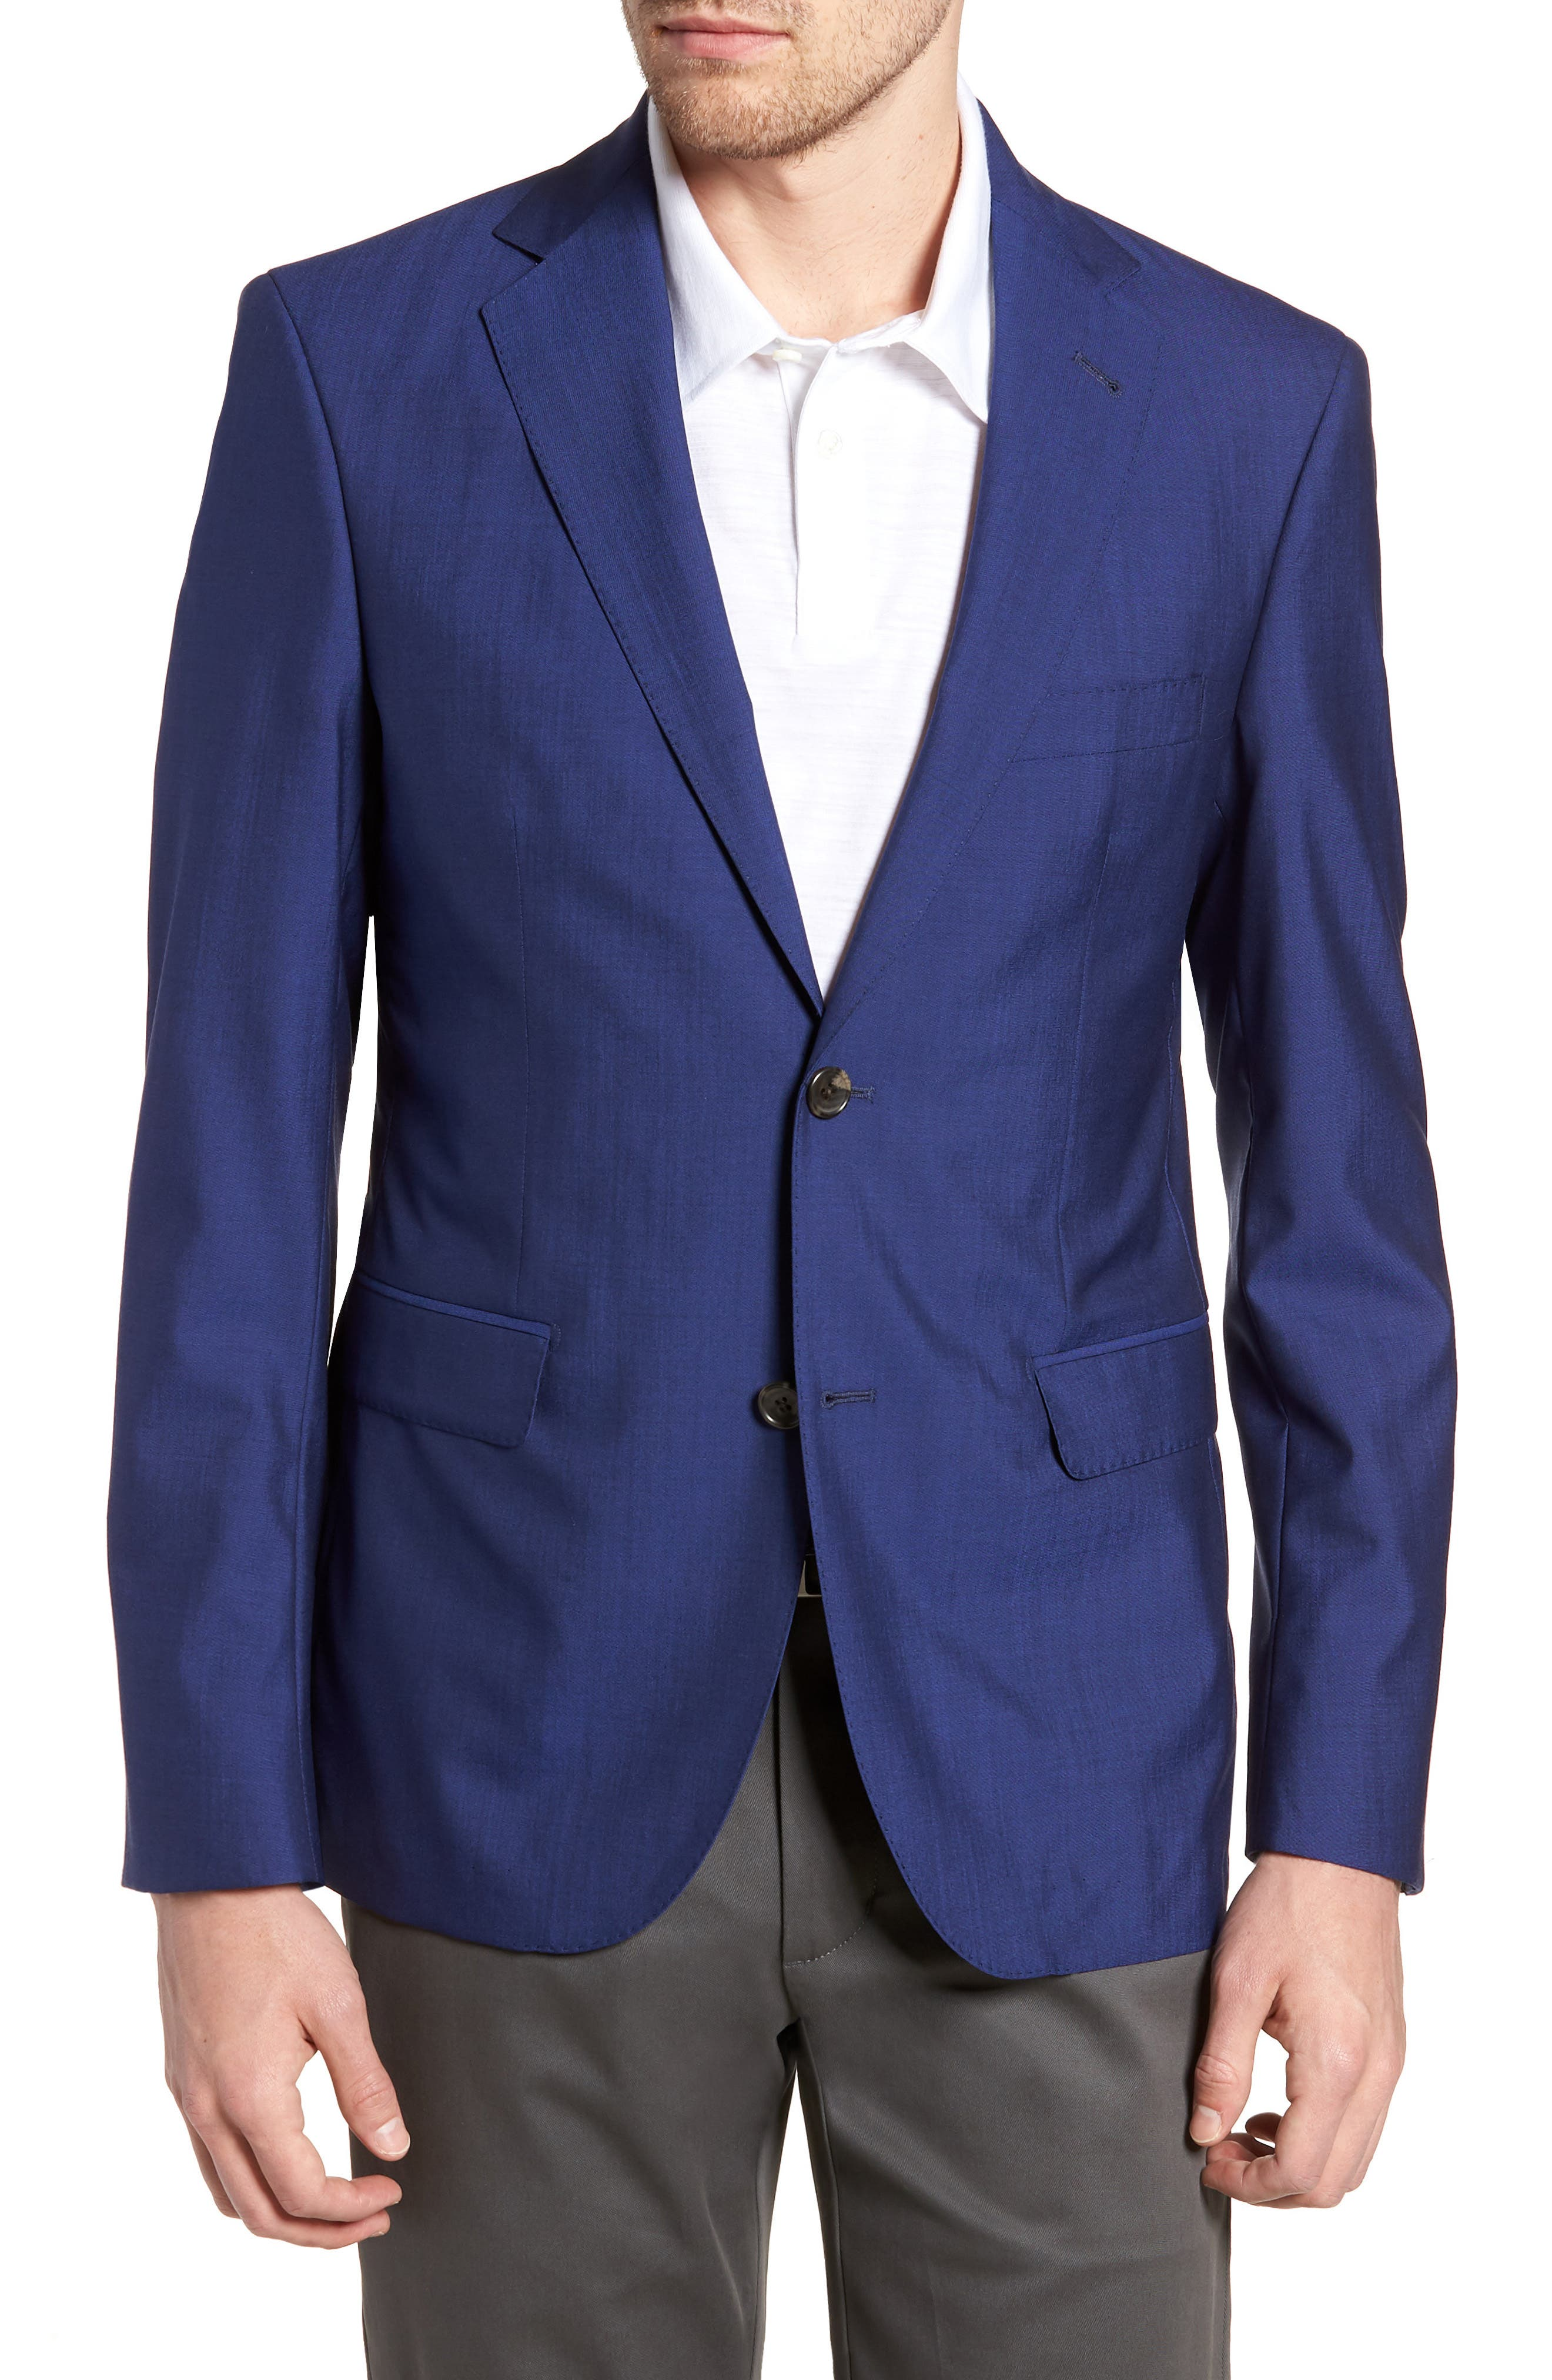 Shelby Trim Fit Wool Blazer,                             Main thumbnail 1, color,                             400